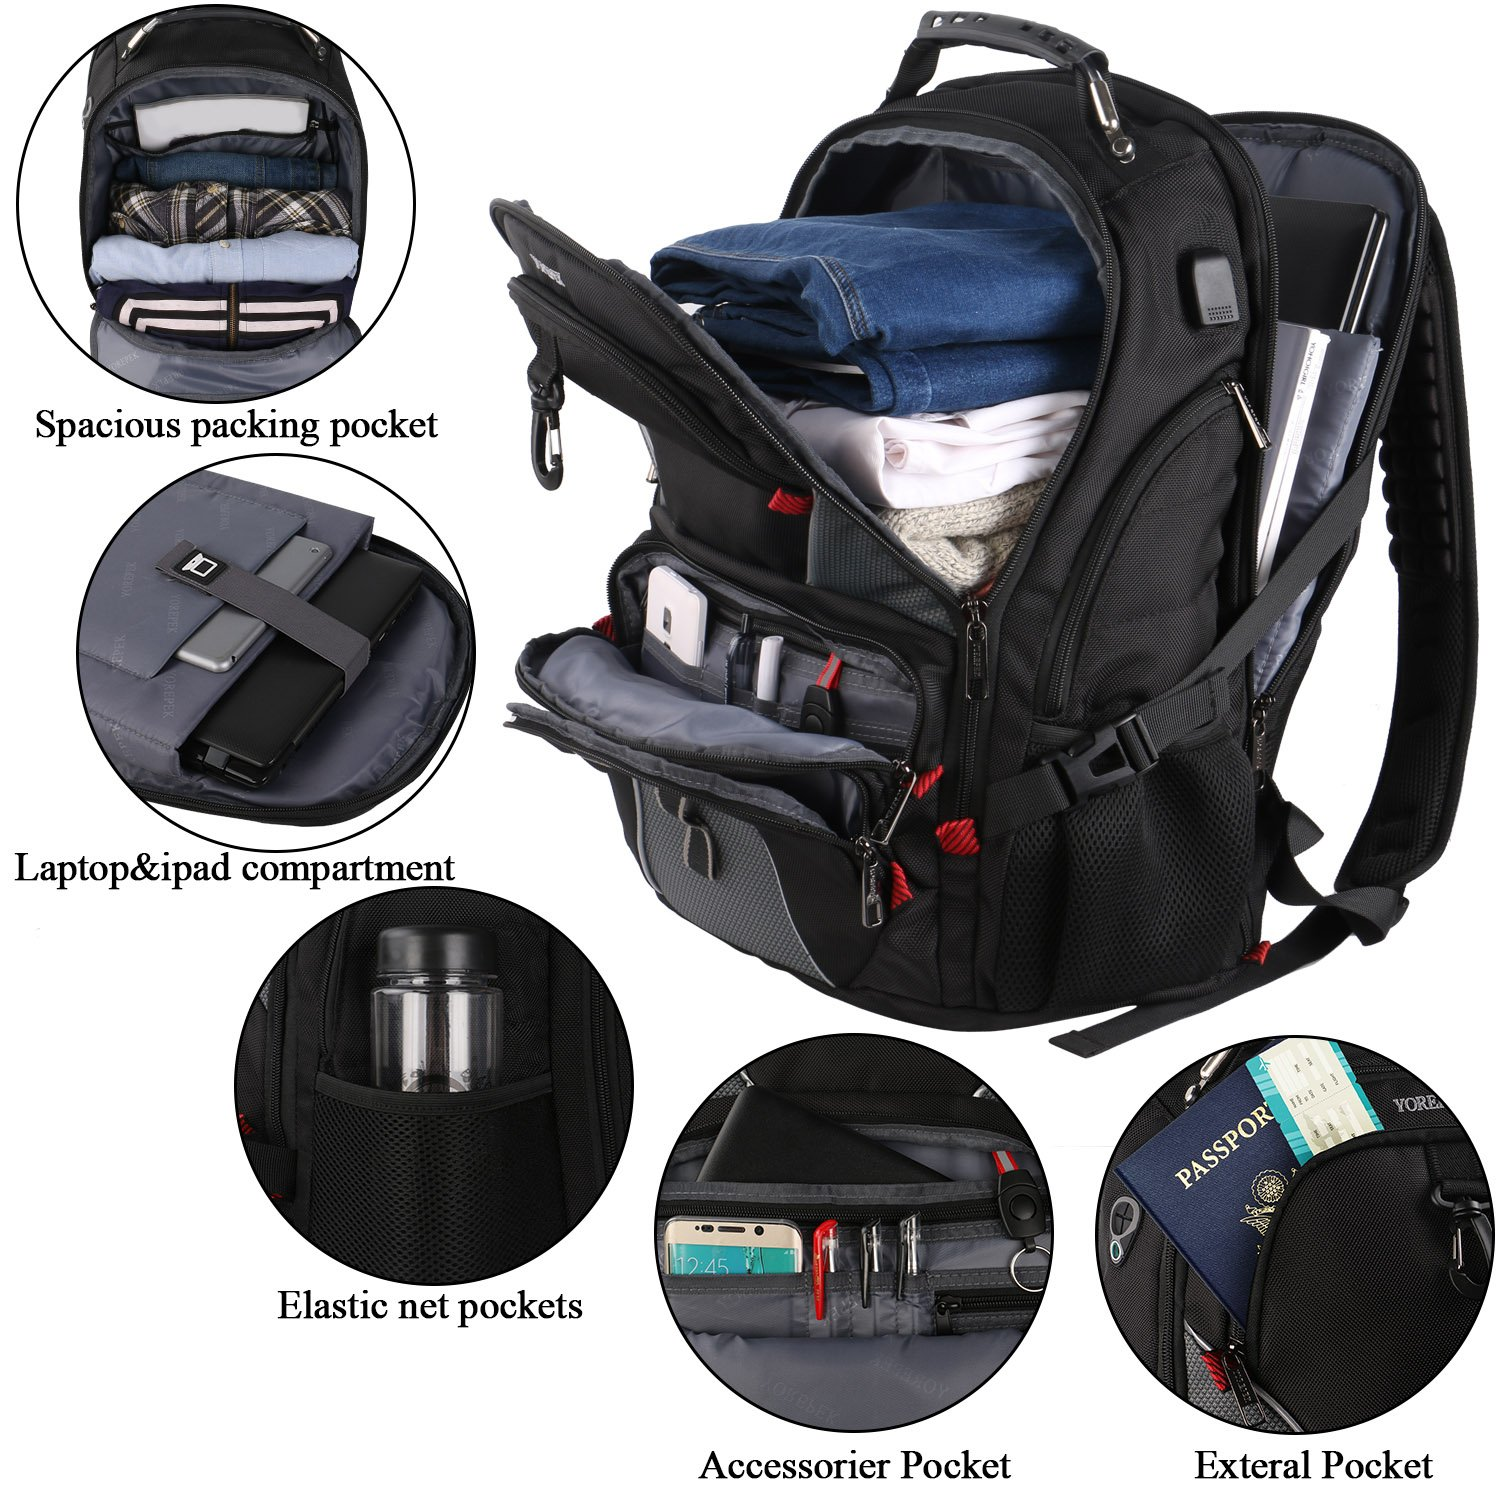 17 inch Laptop Backpack,Large Travel Backpack,TSA Friendly Durable Computer Bagpack with Luggage Sleeve for Men Women, Water Resistant Business College School Bag with USB Charger Port, Black by YOREPEK (Image #2)